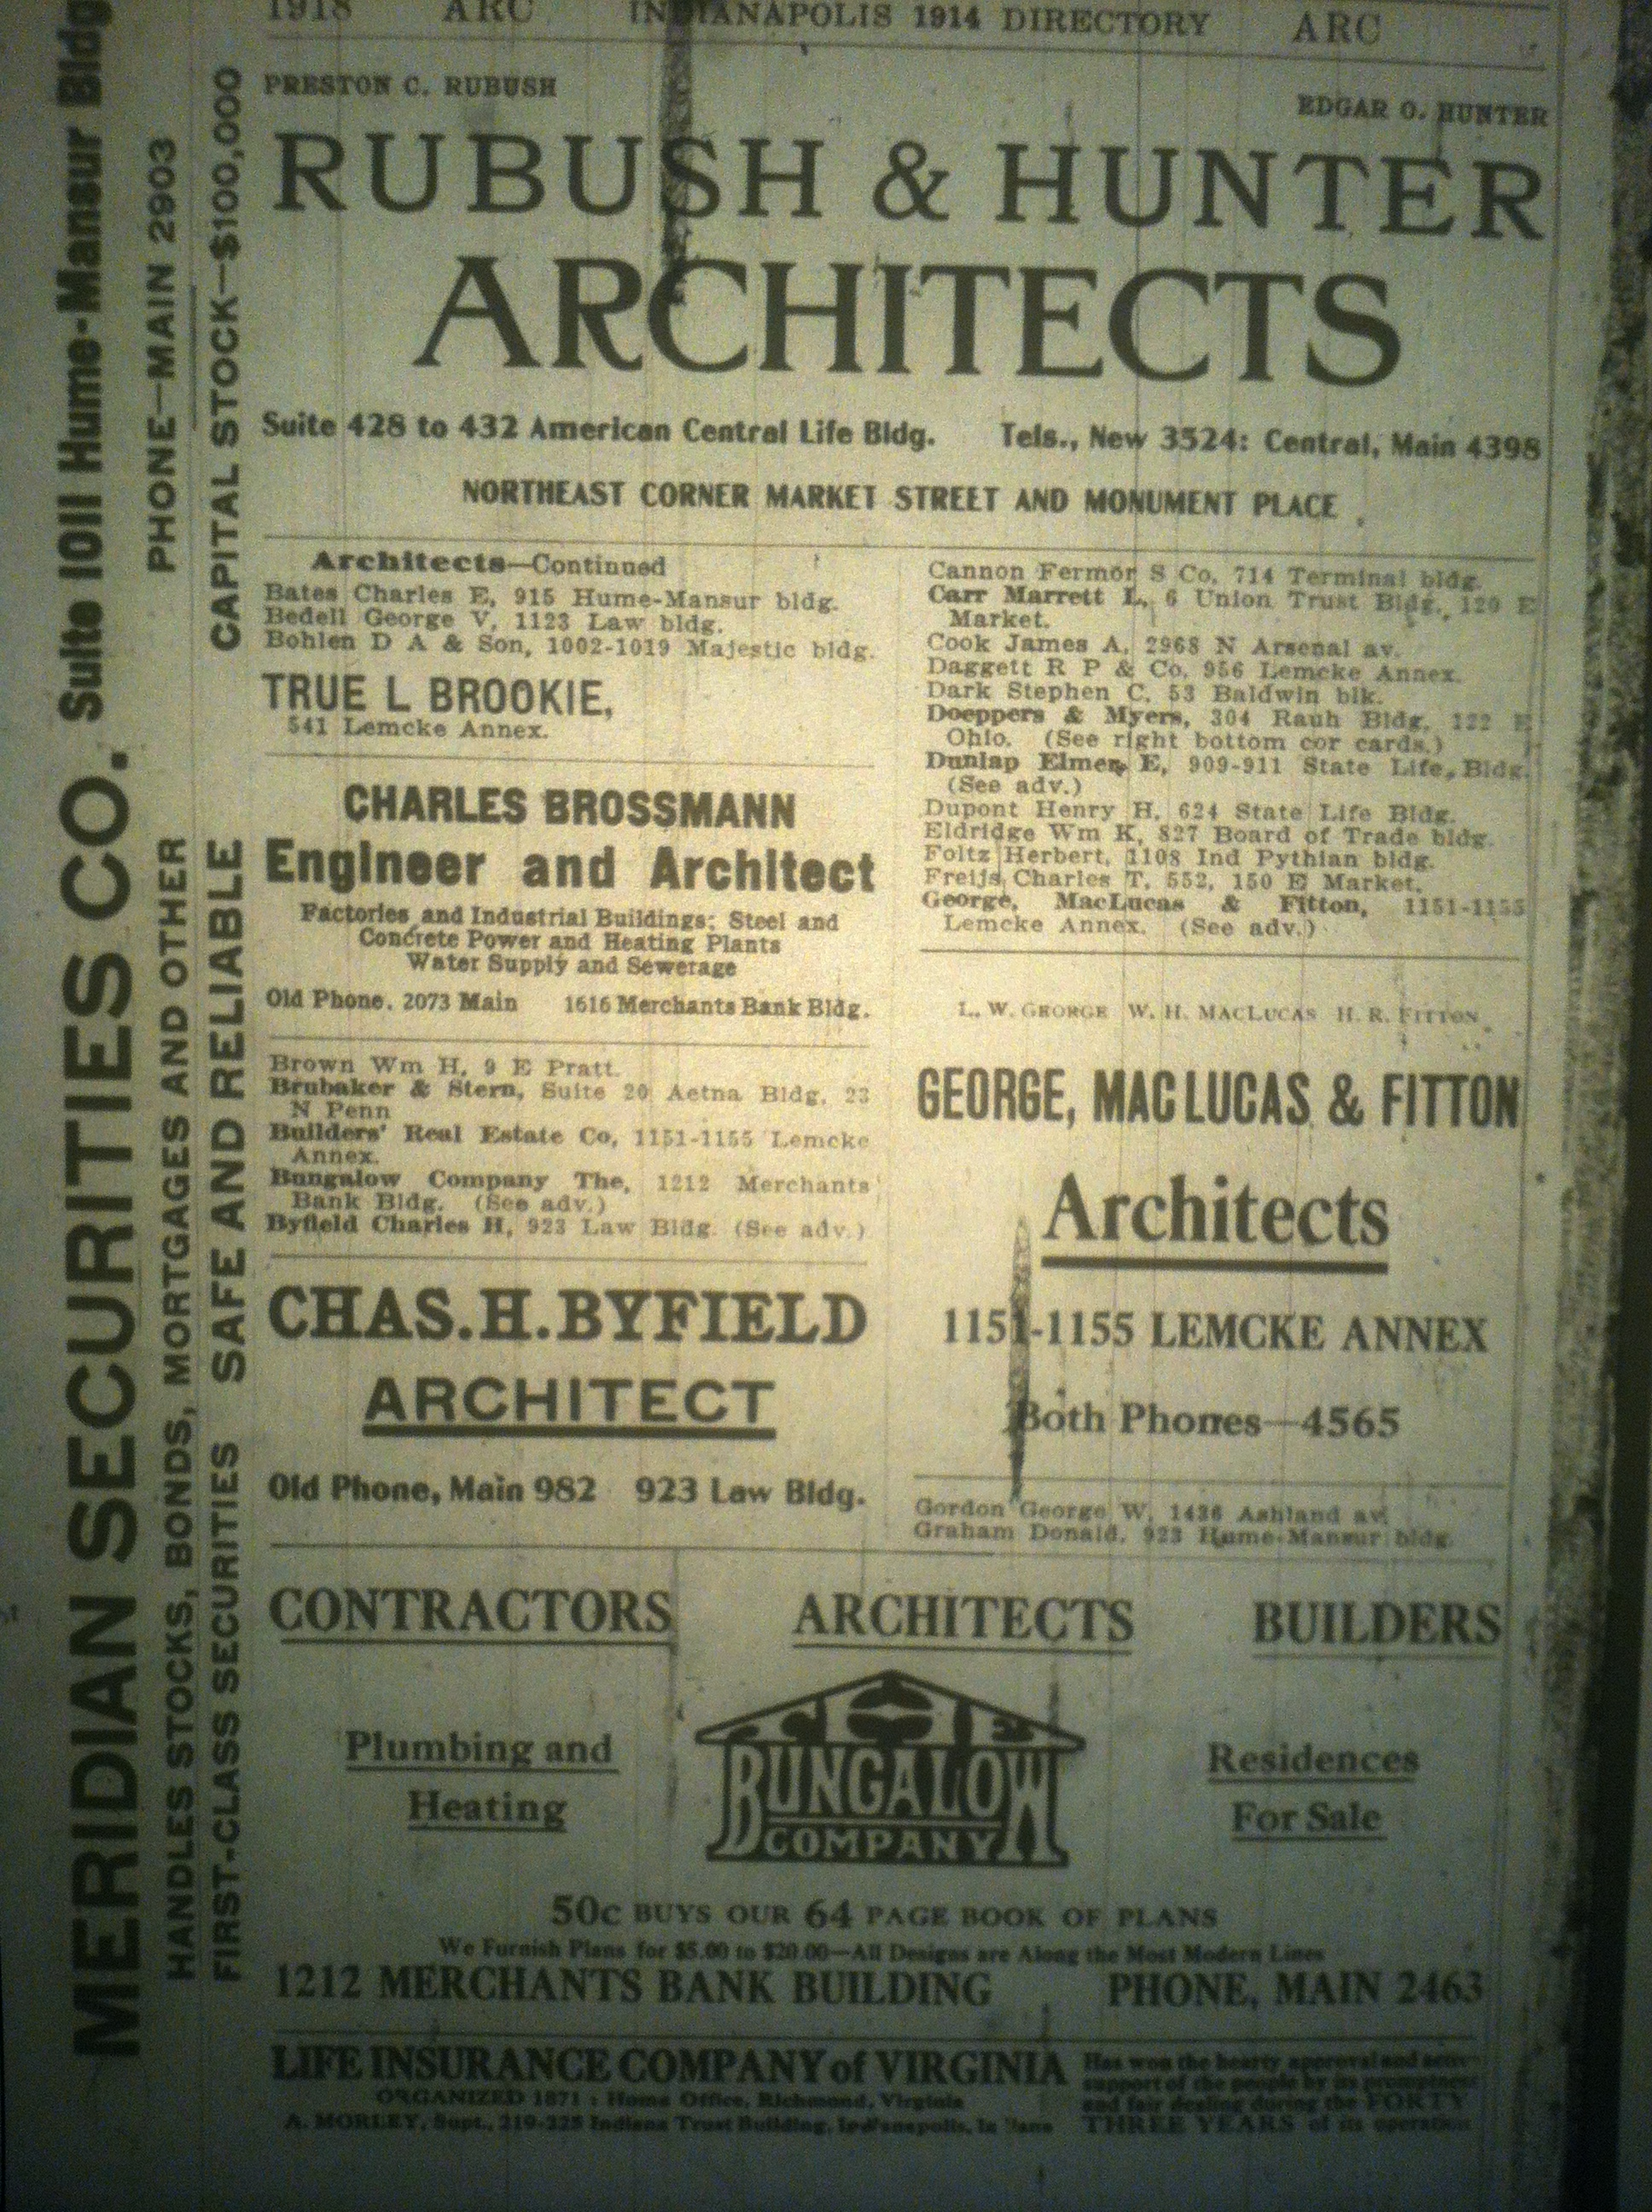 Sunday Adverts: Architects in 1914 Indianapolis